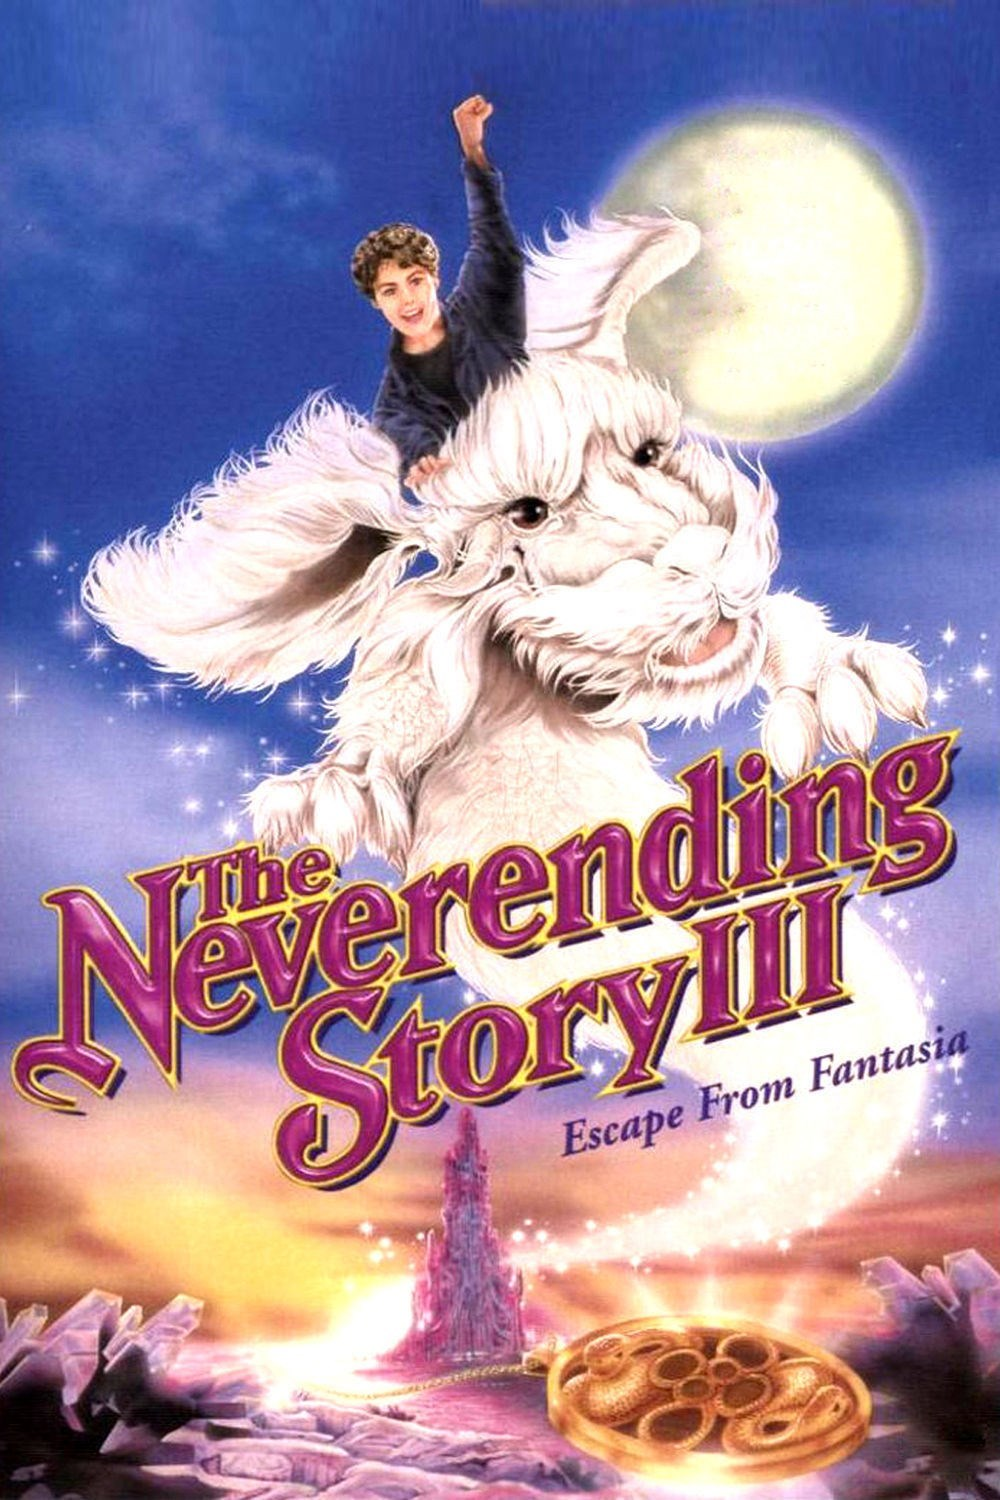 The NeverEnding Story 3